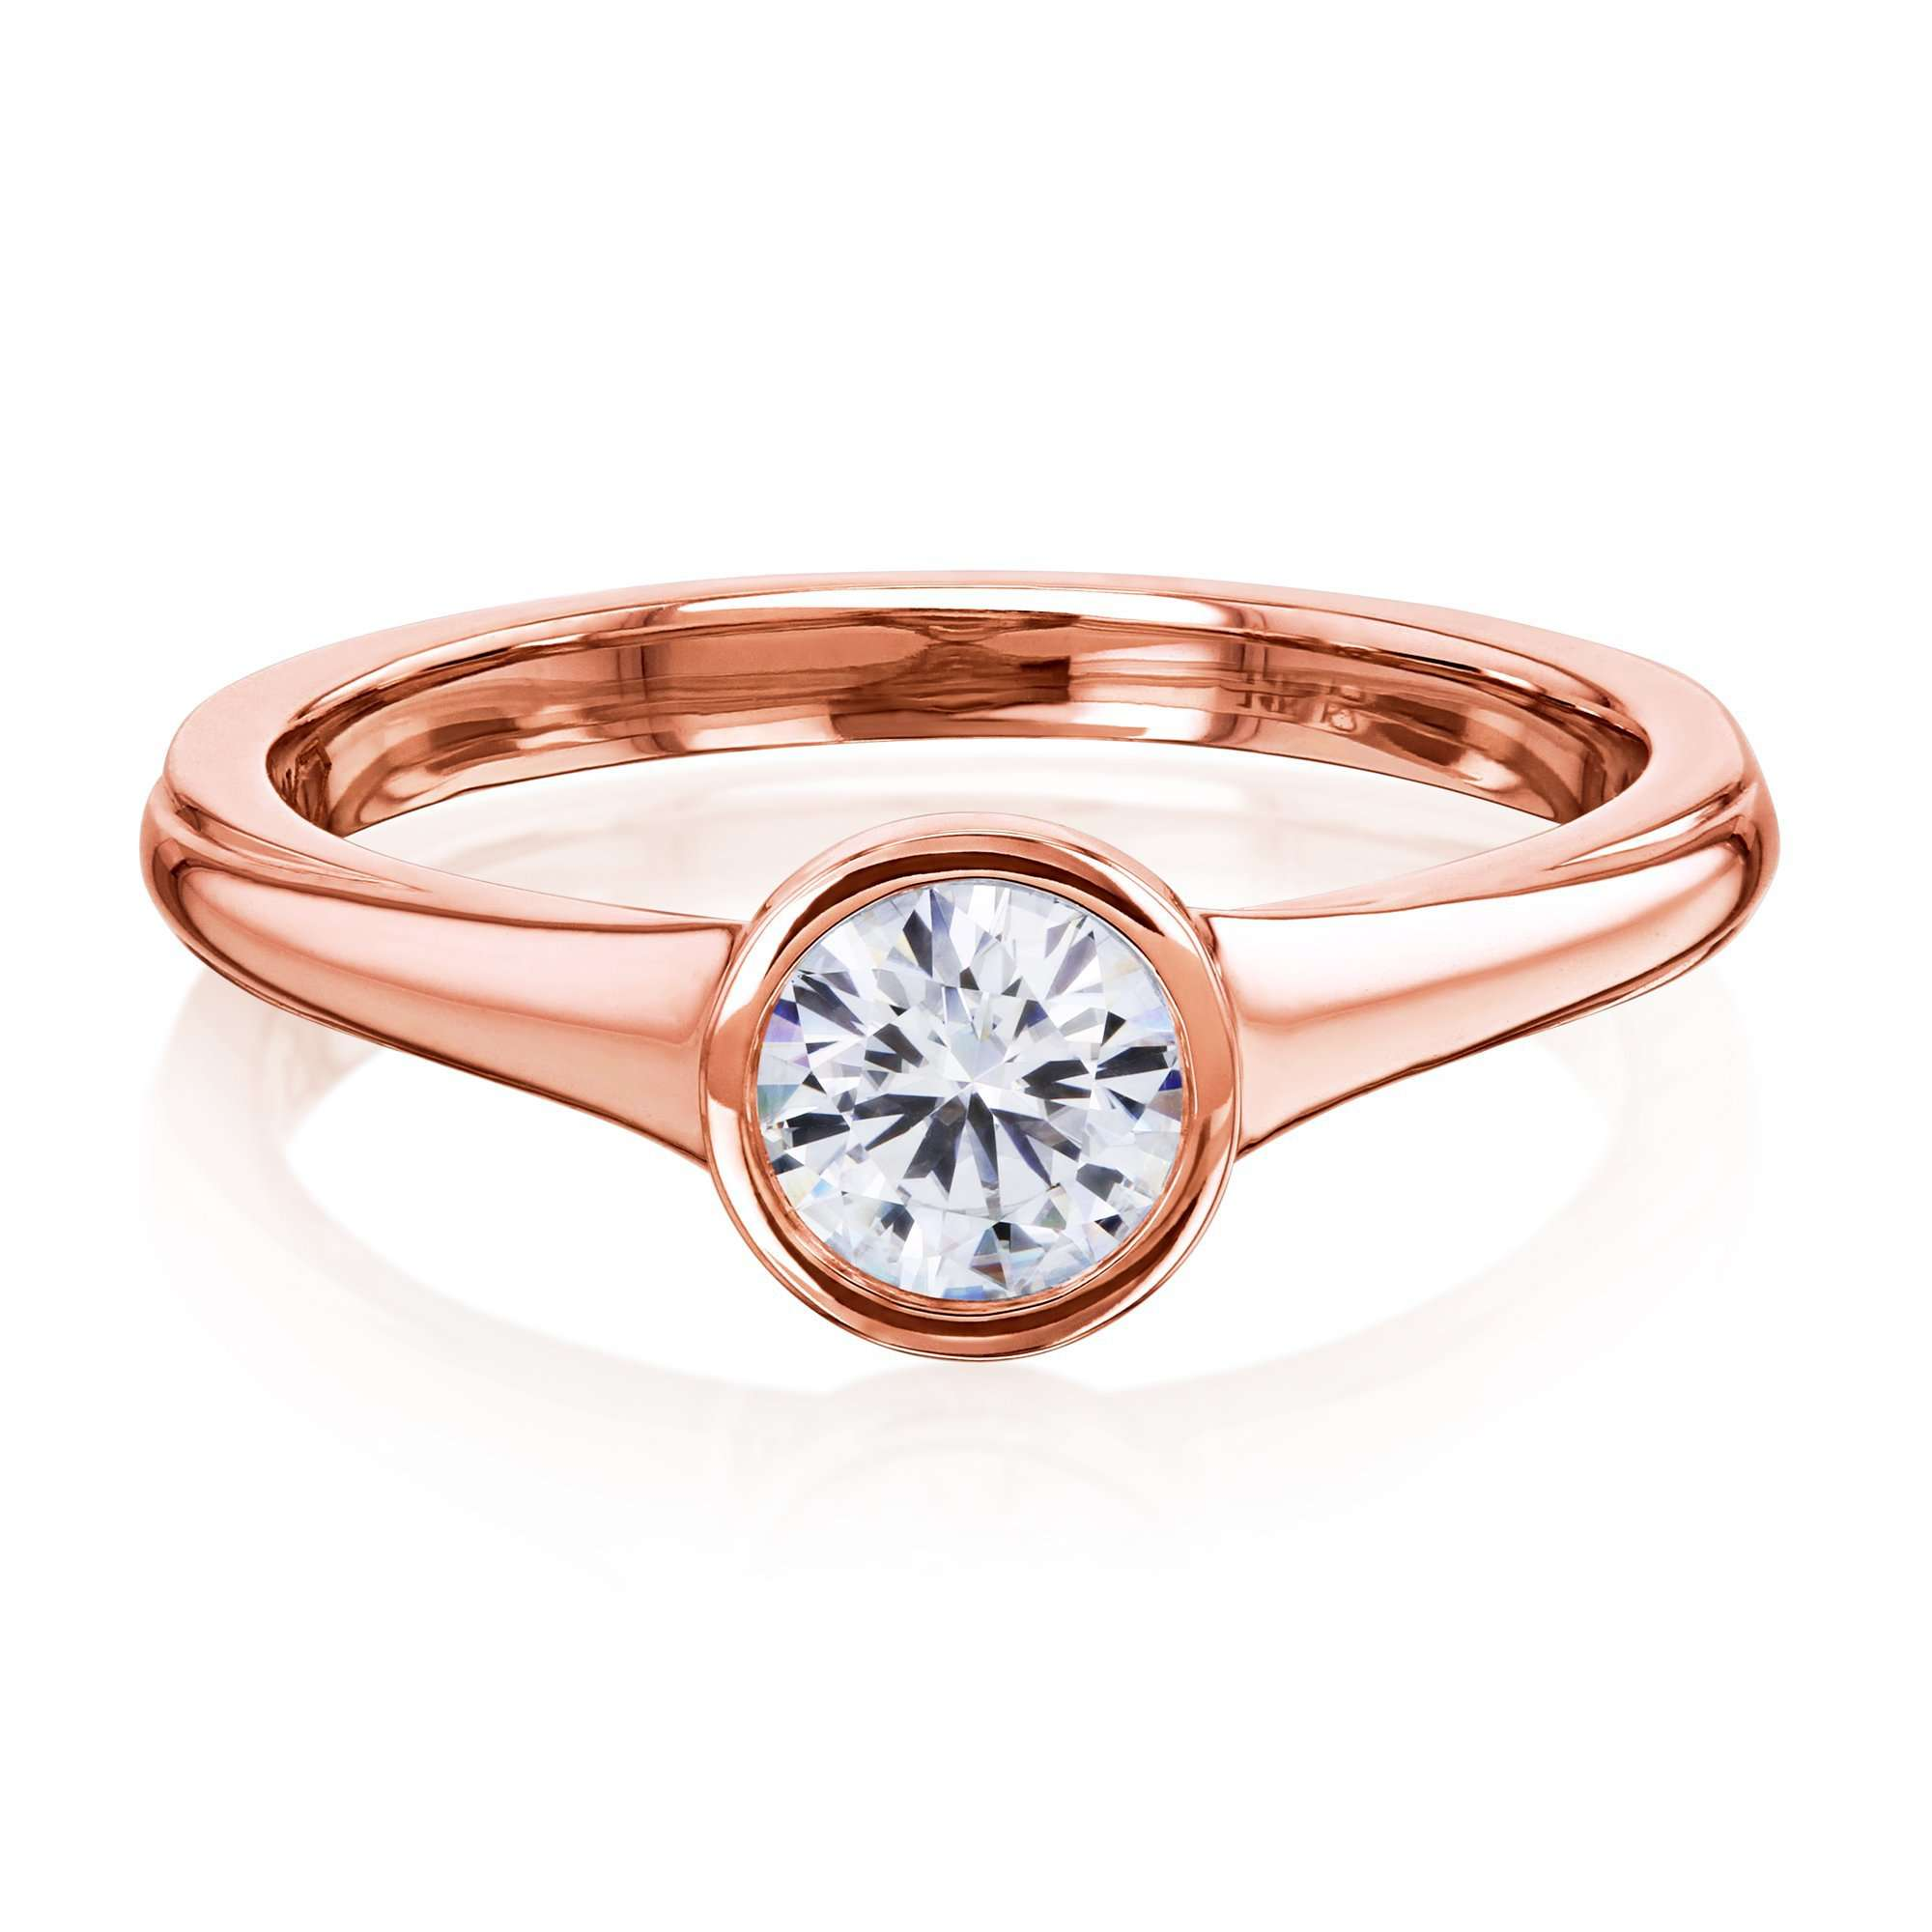 Cheap 0.5ct Round Forever One Moissanite Bezel - rose-gold 6.0